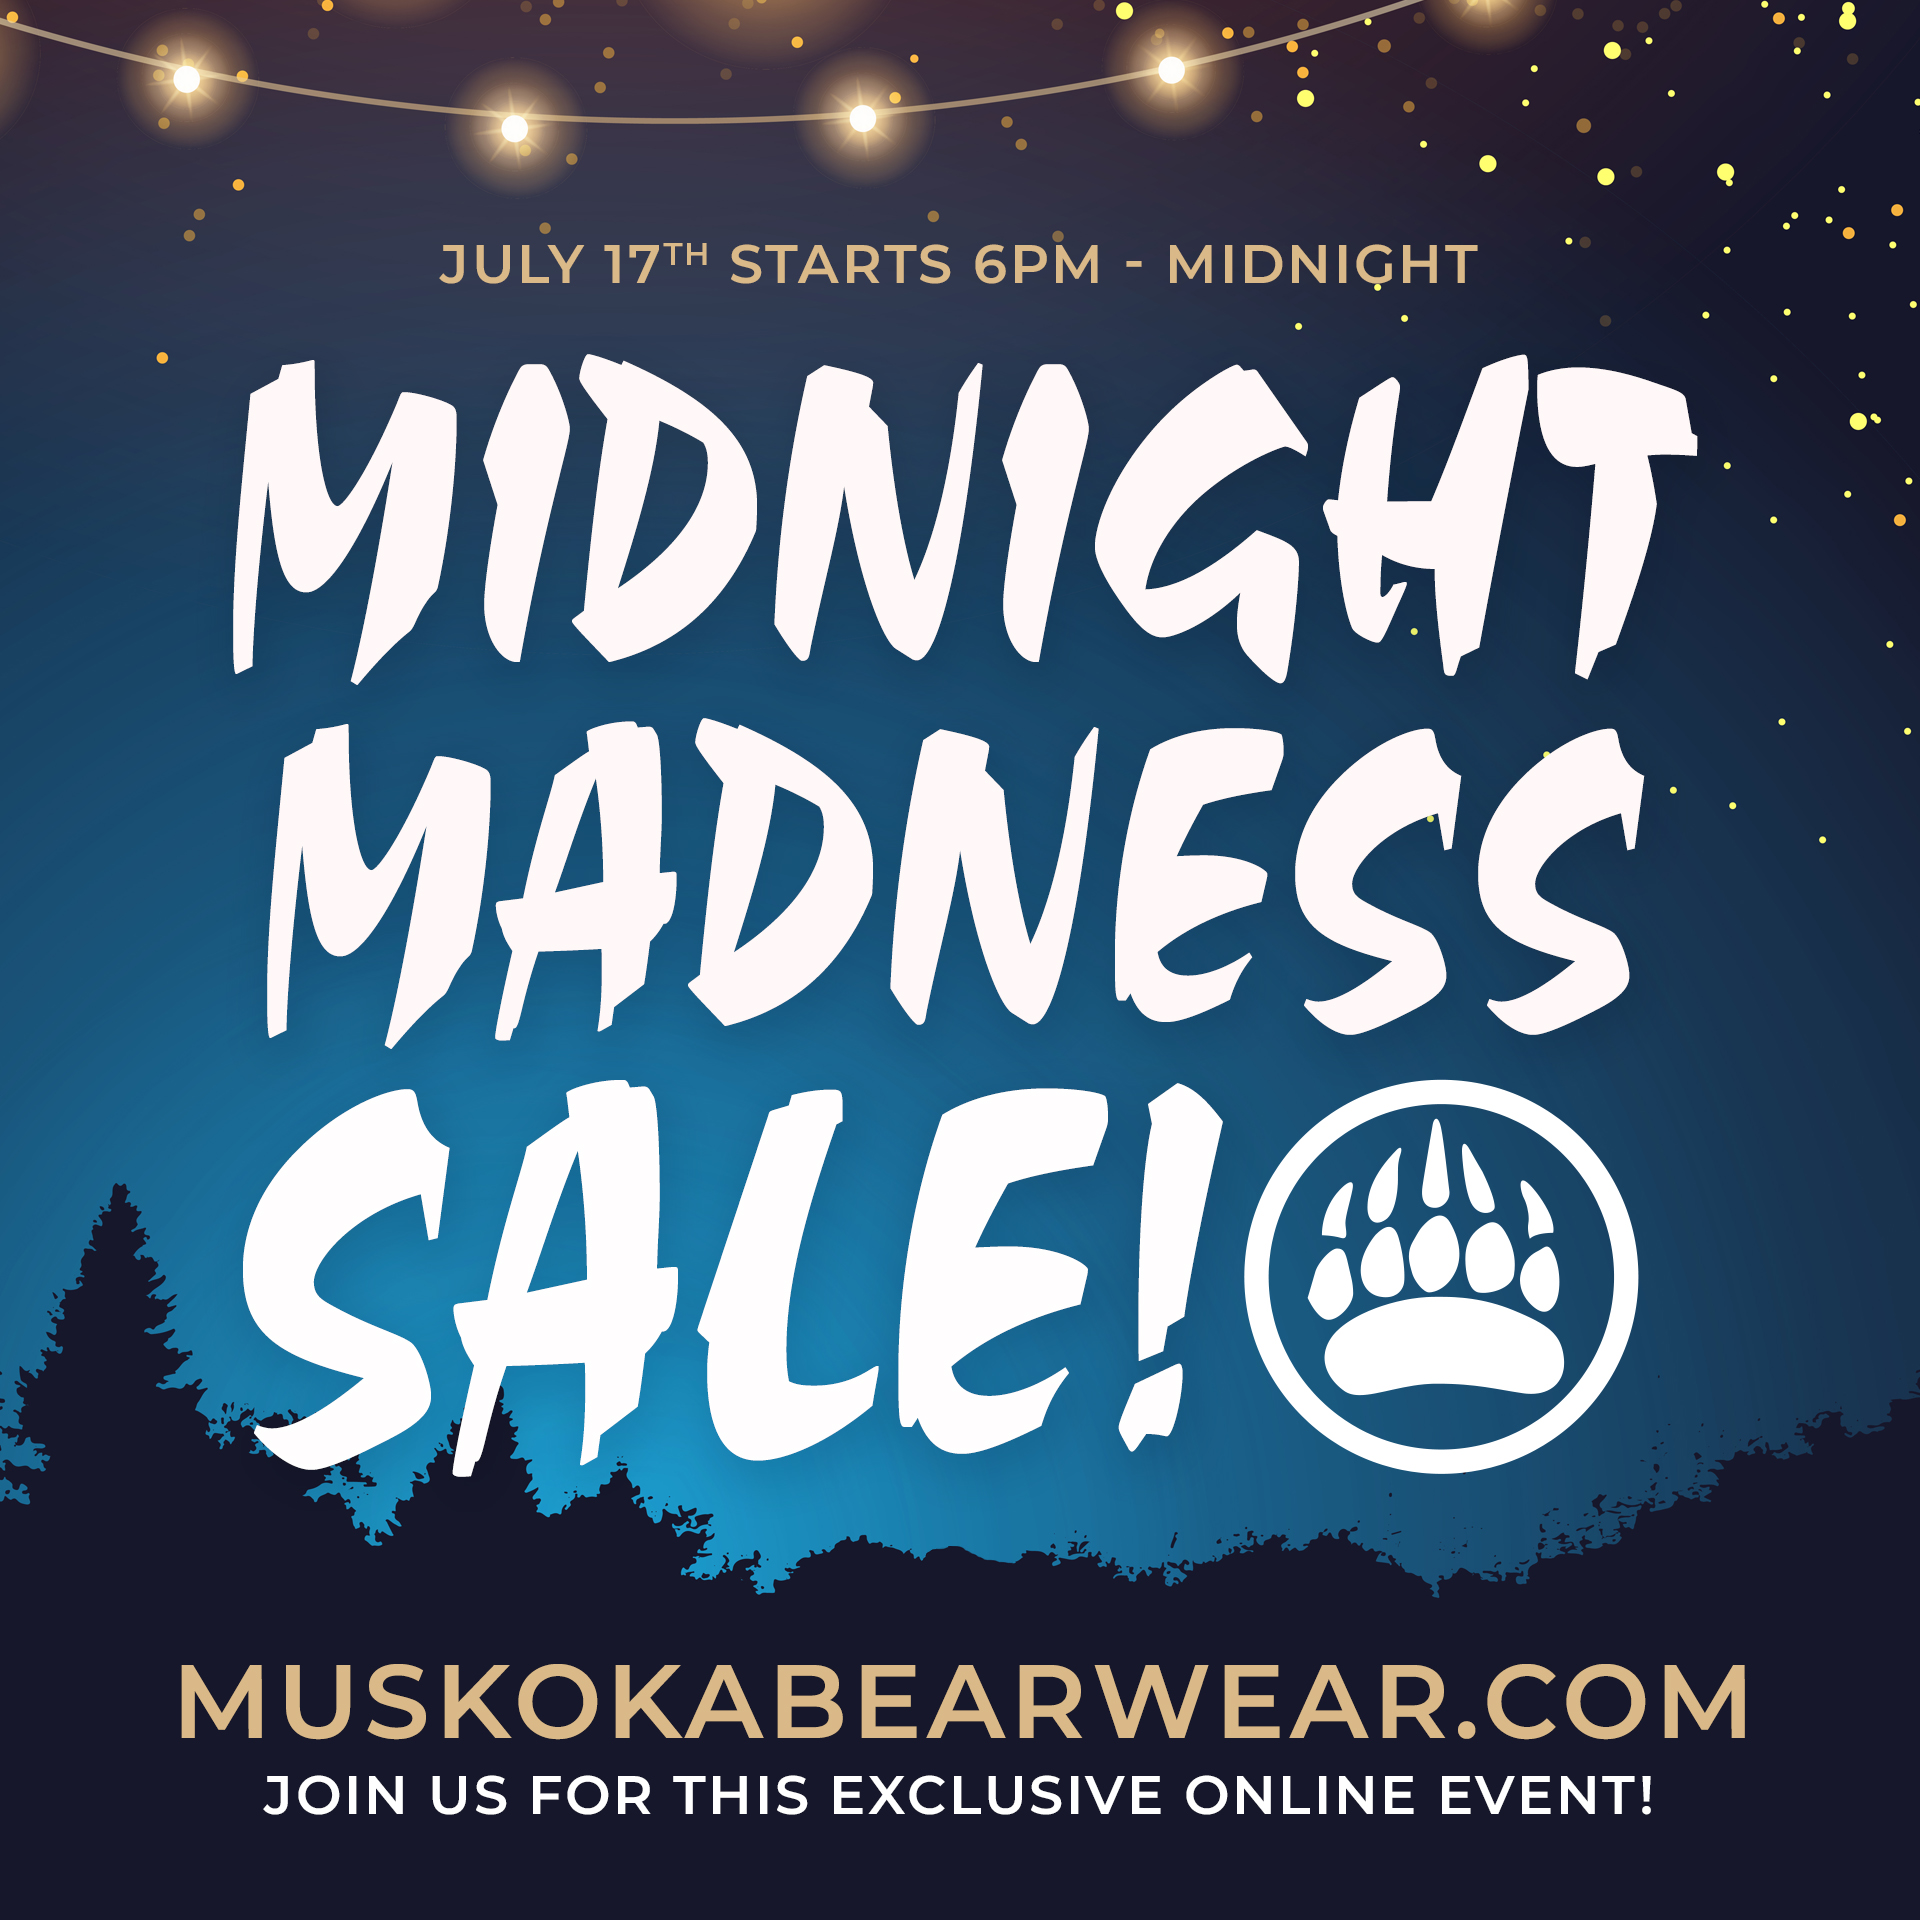 Virtual Midnight Madness!